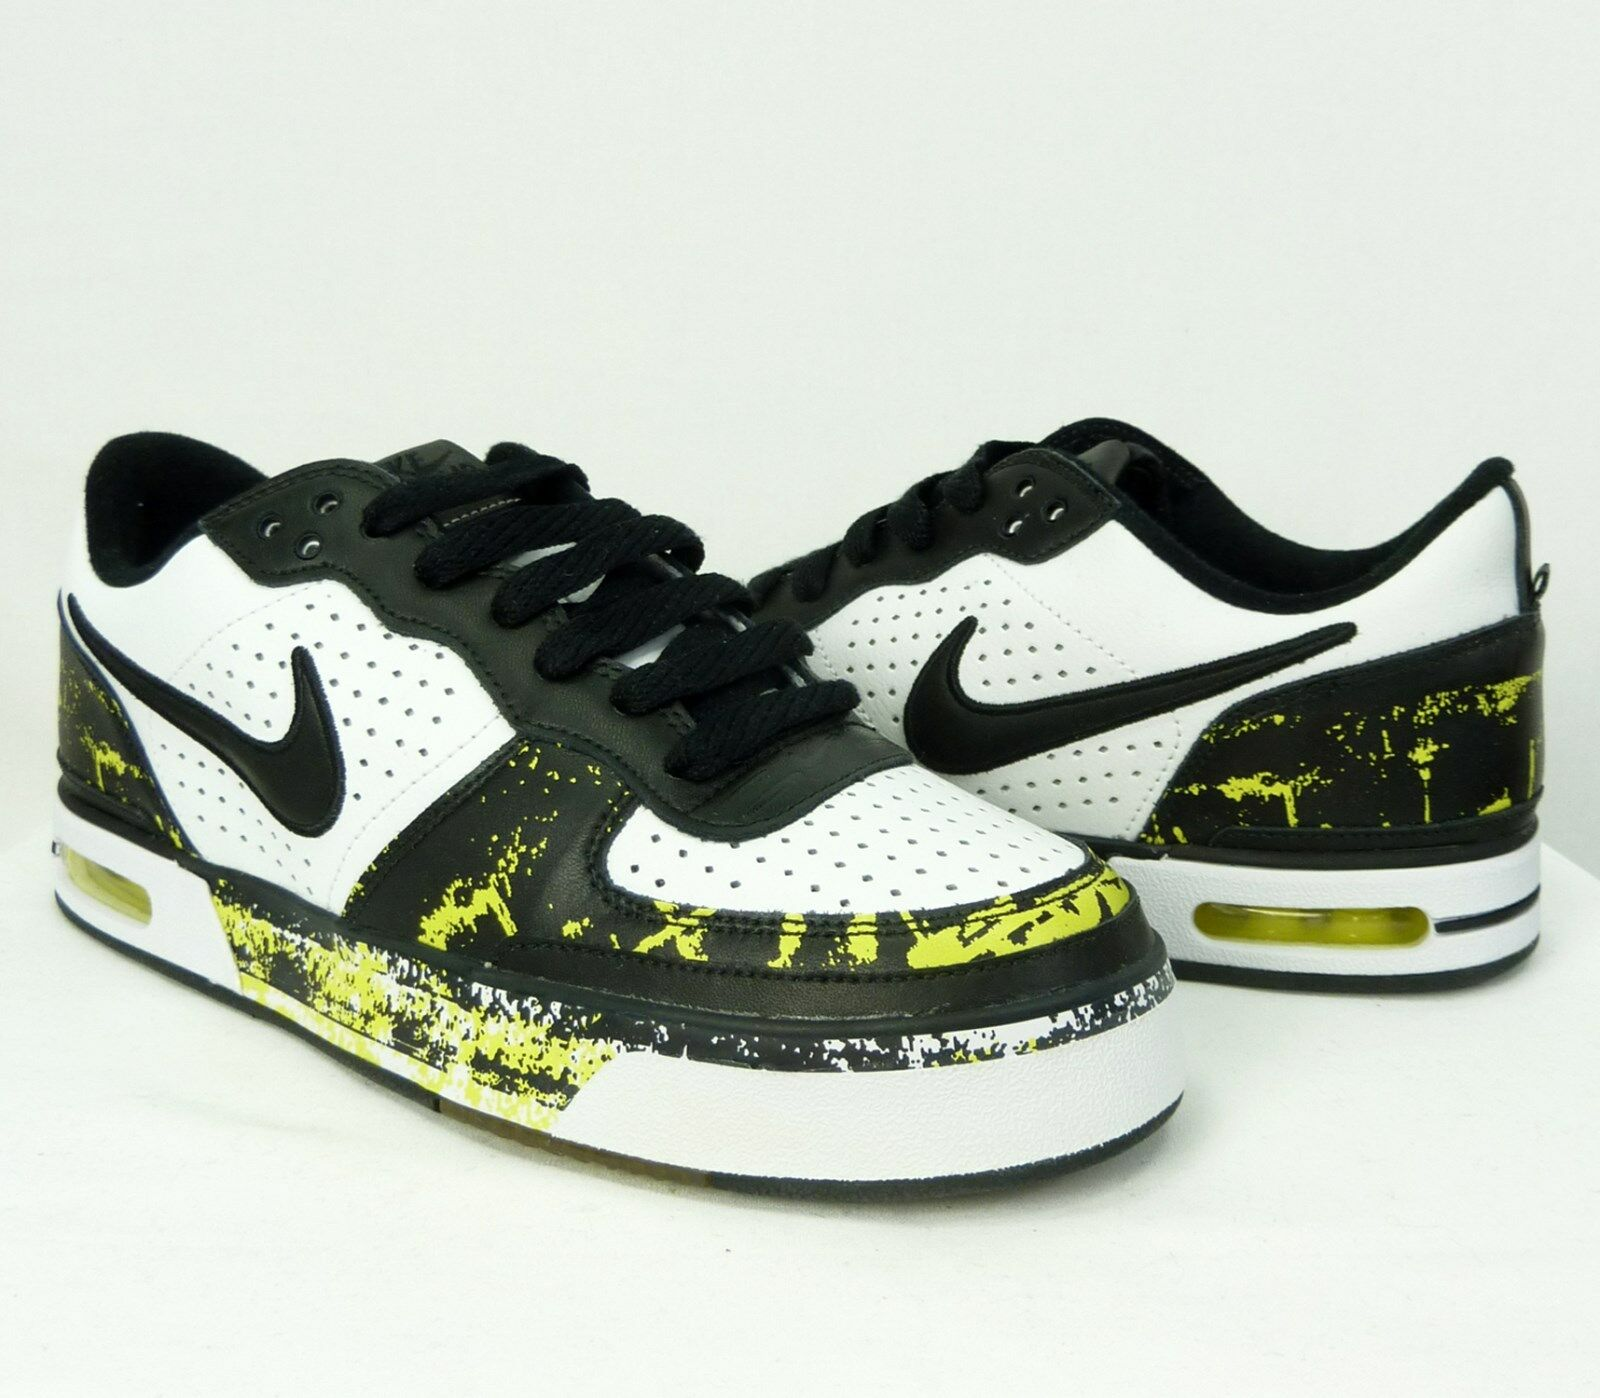 bd5bf727cf NEW NIKE AIR SPLATTER STYLE SHOES SNEAKERS DEADSTOCK SIZE 8.5 US CAPTIVATE  nfuzlp2364-Athletic Shoes